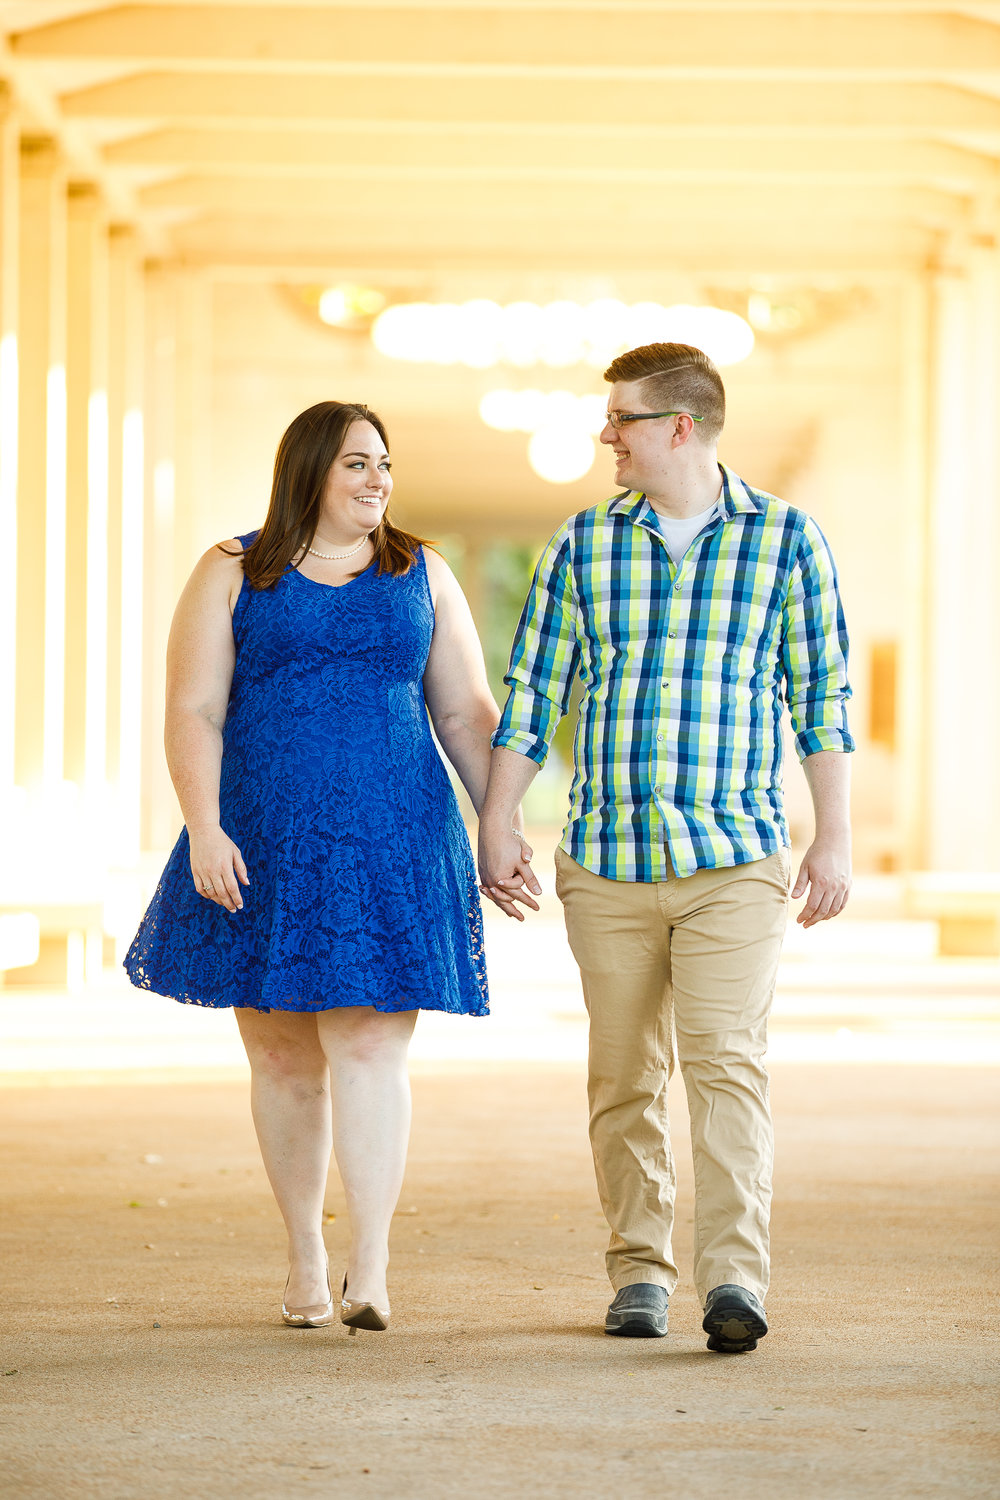 Busch Stadium and Forest Park Engagement Photos by St Louis Wedding Photographers and Videographers Oldani Photography 24.jpg